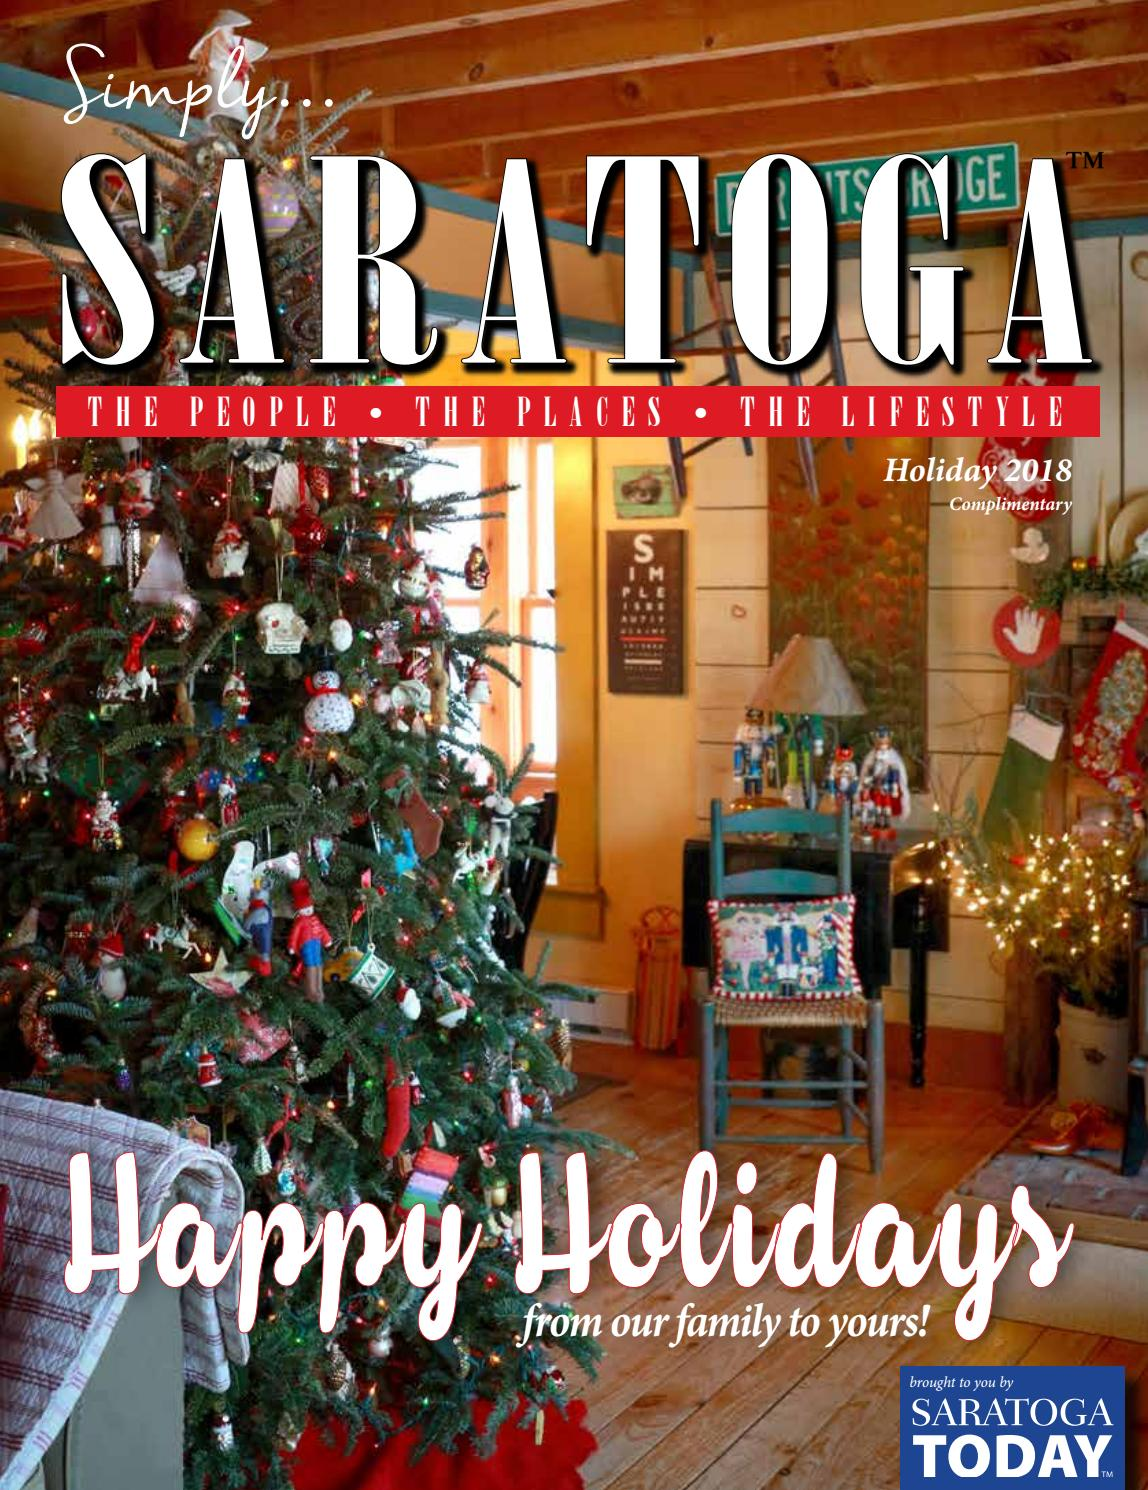 c0e213a134ce Simply Saratoga Holiday 2018 by Saratoga TODAY - issuu